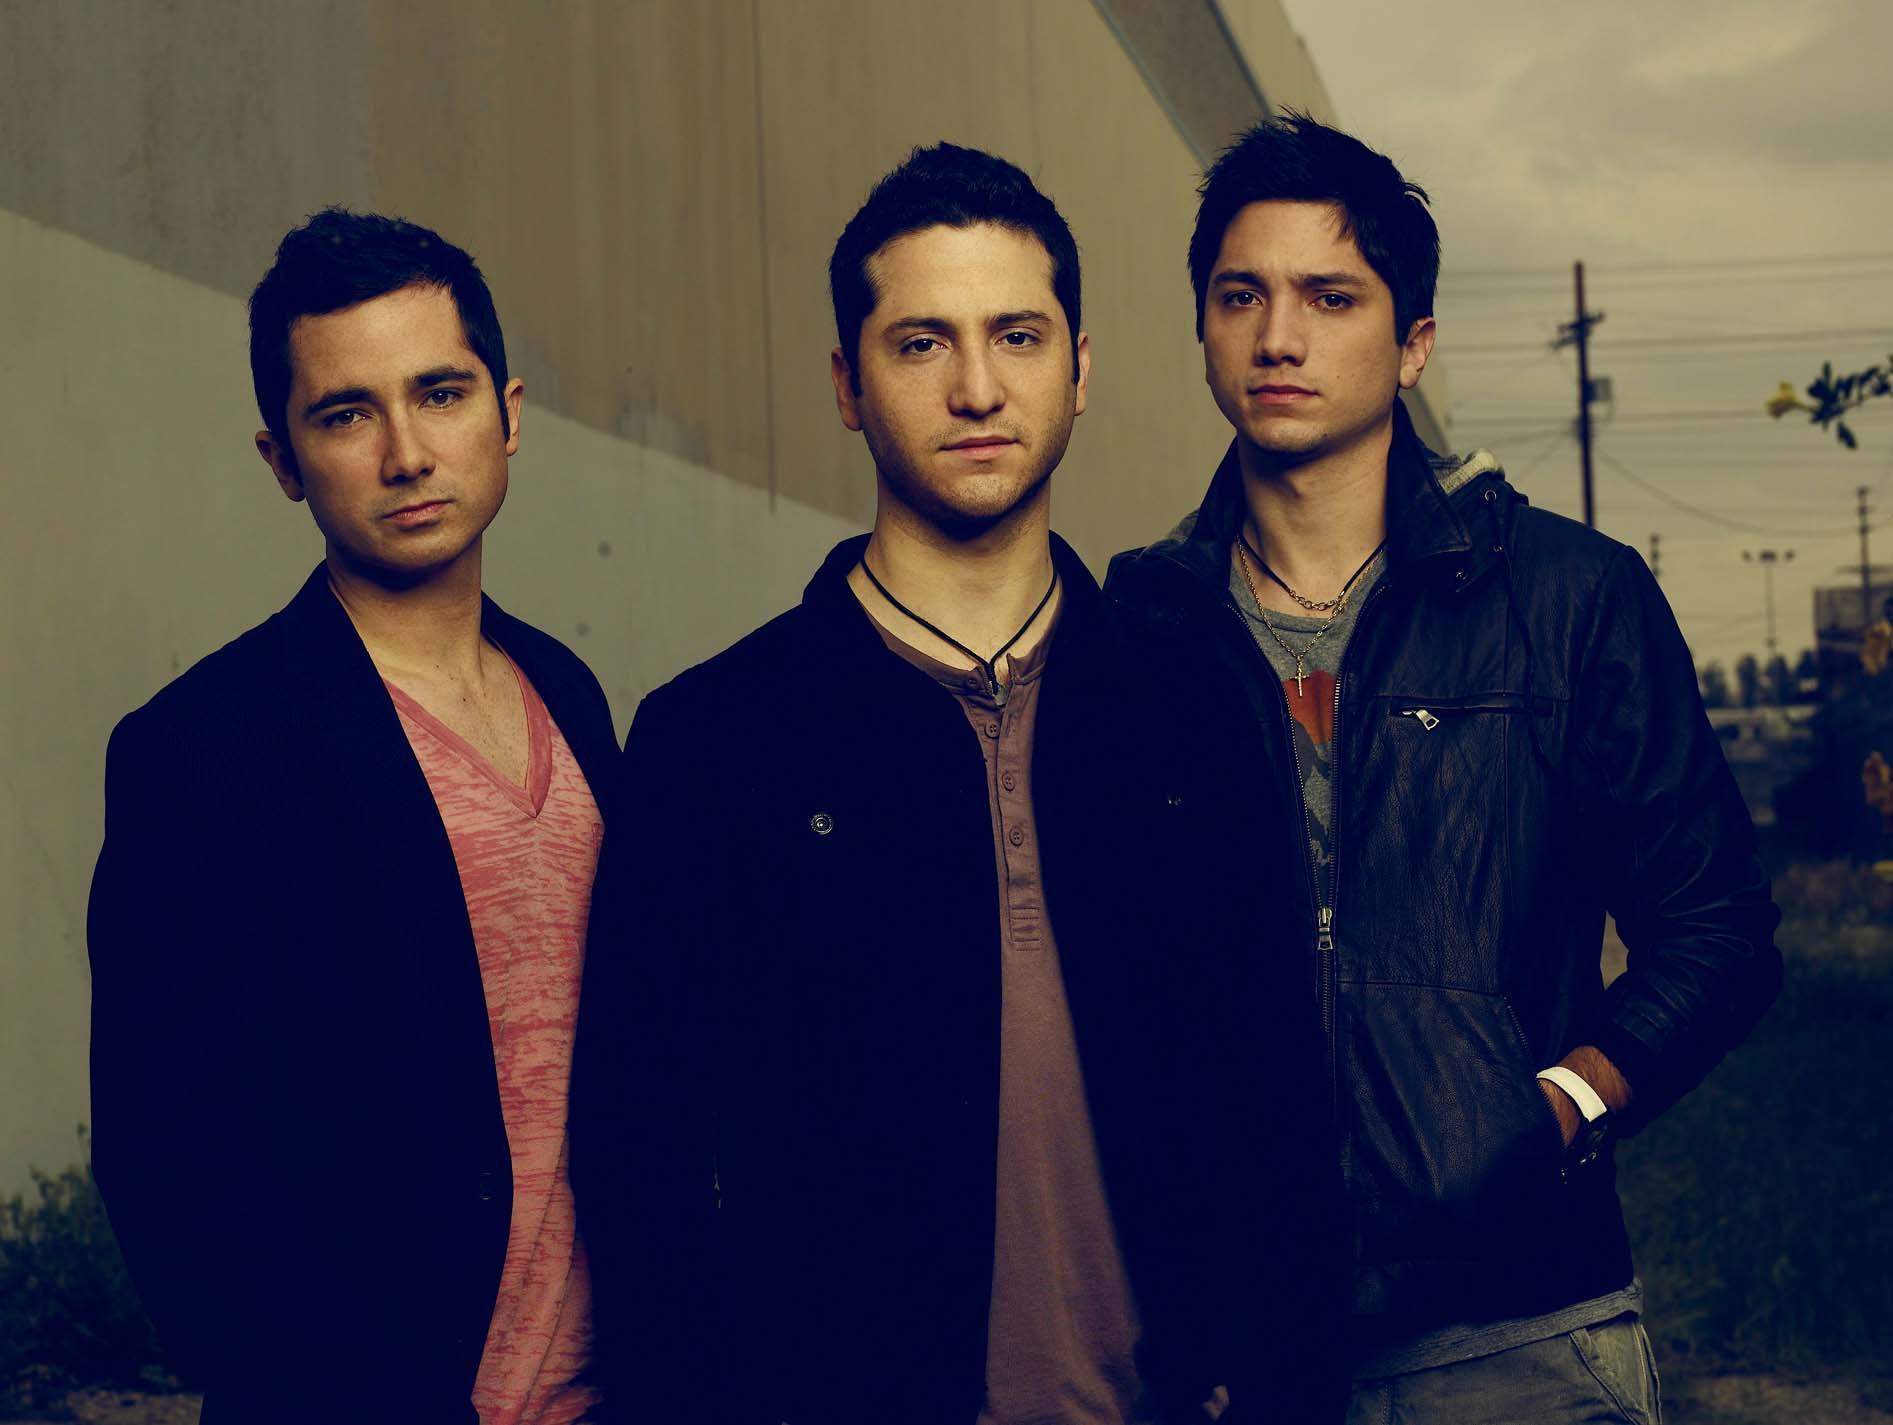 Boyce Avenue Singers, Bands, Actors and famous people I